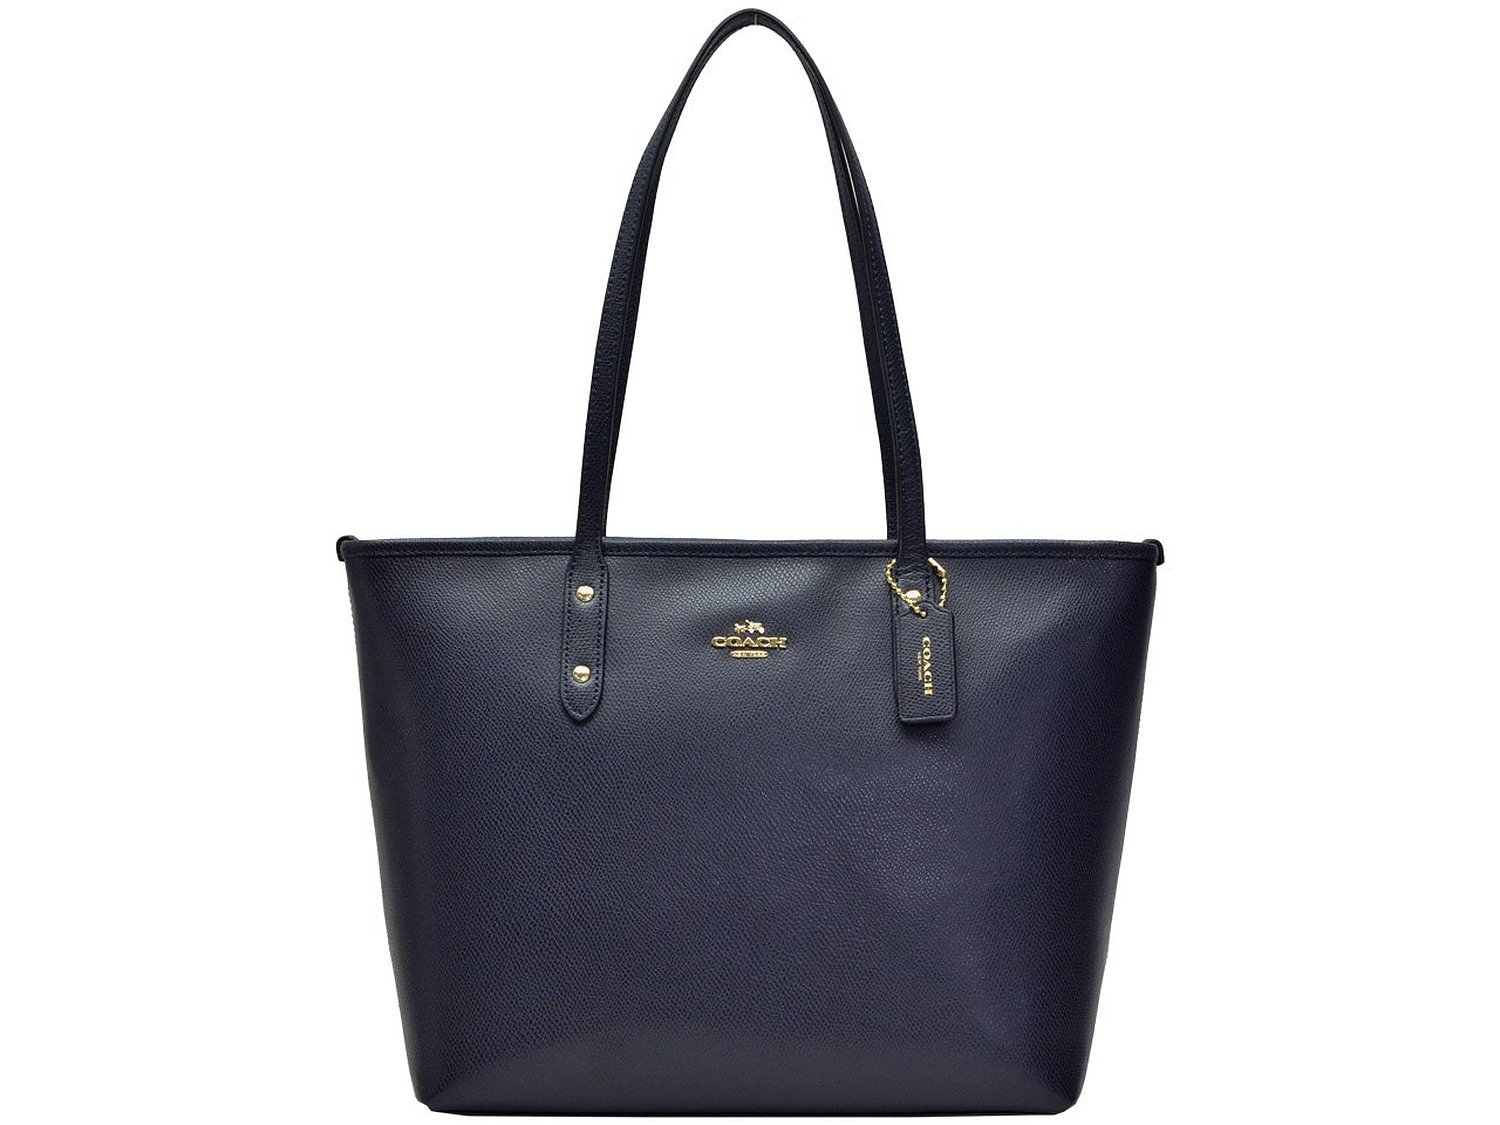 b4cdfbcabf ... cheapest coach coach womens tote bag f36875 midnight navy luxury cross  grain leather city zip top